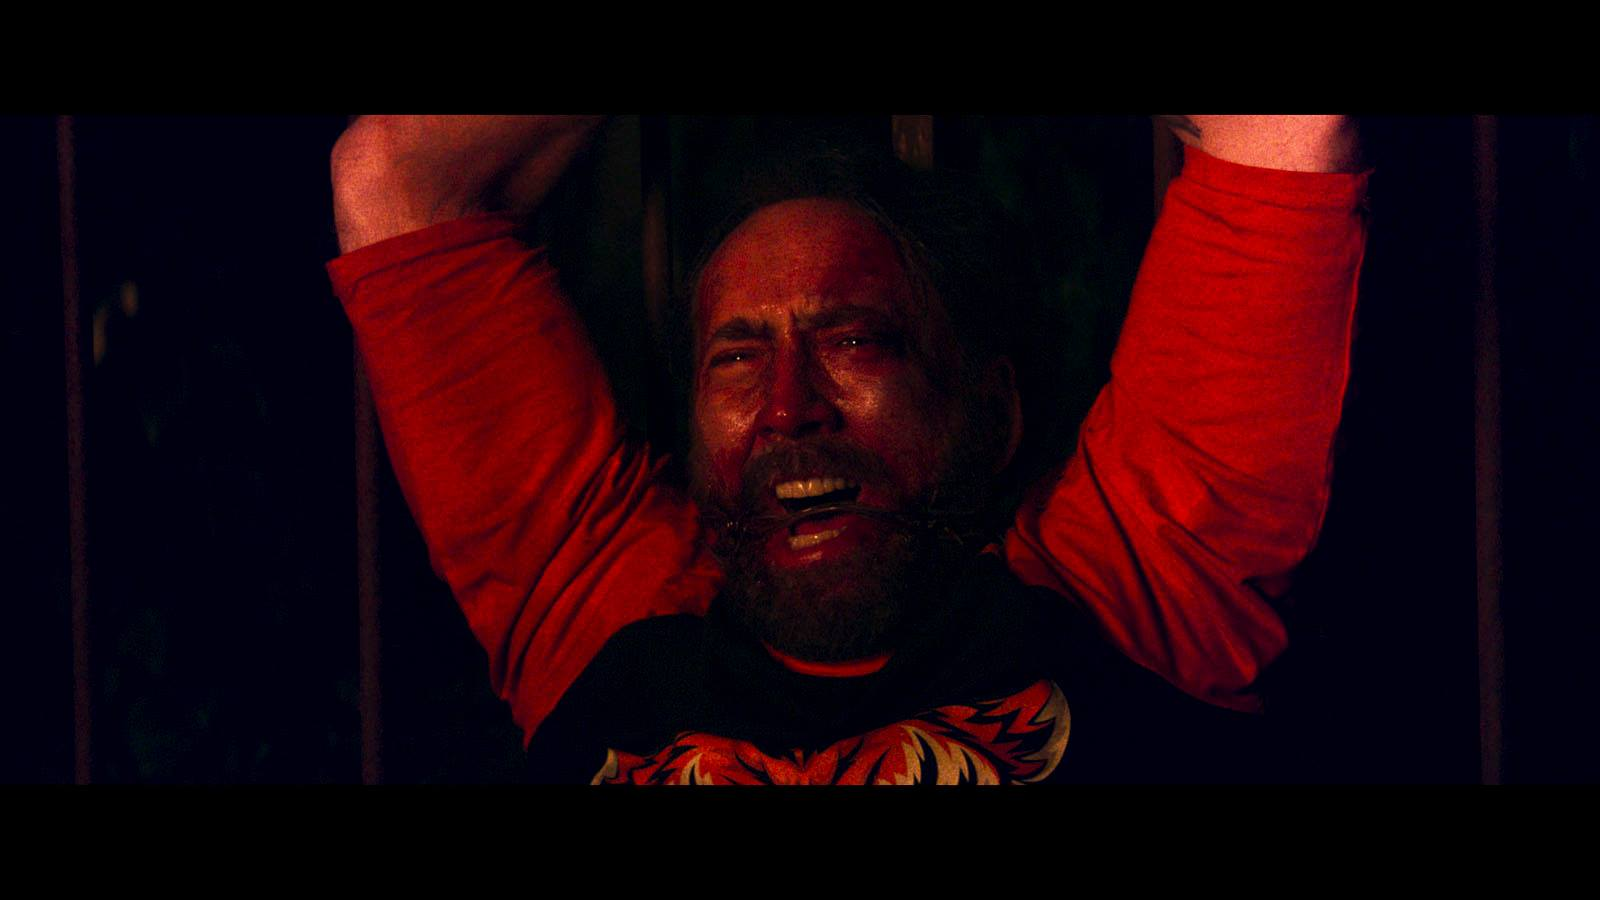 Nicolas Cage in Mandy (2018)